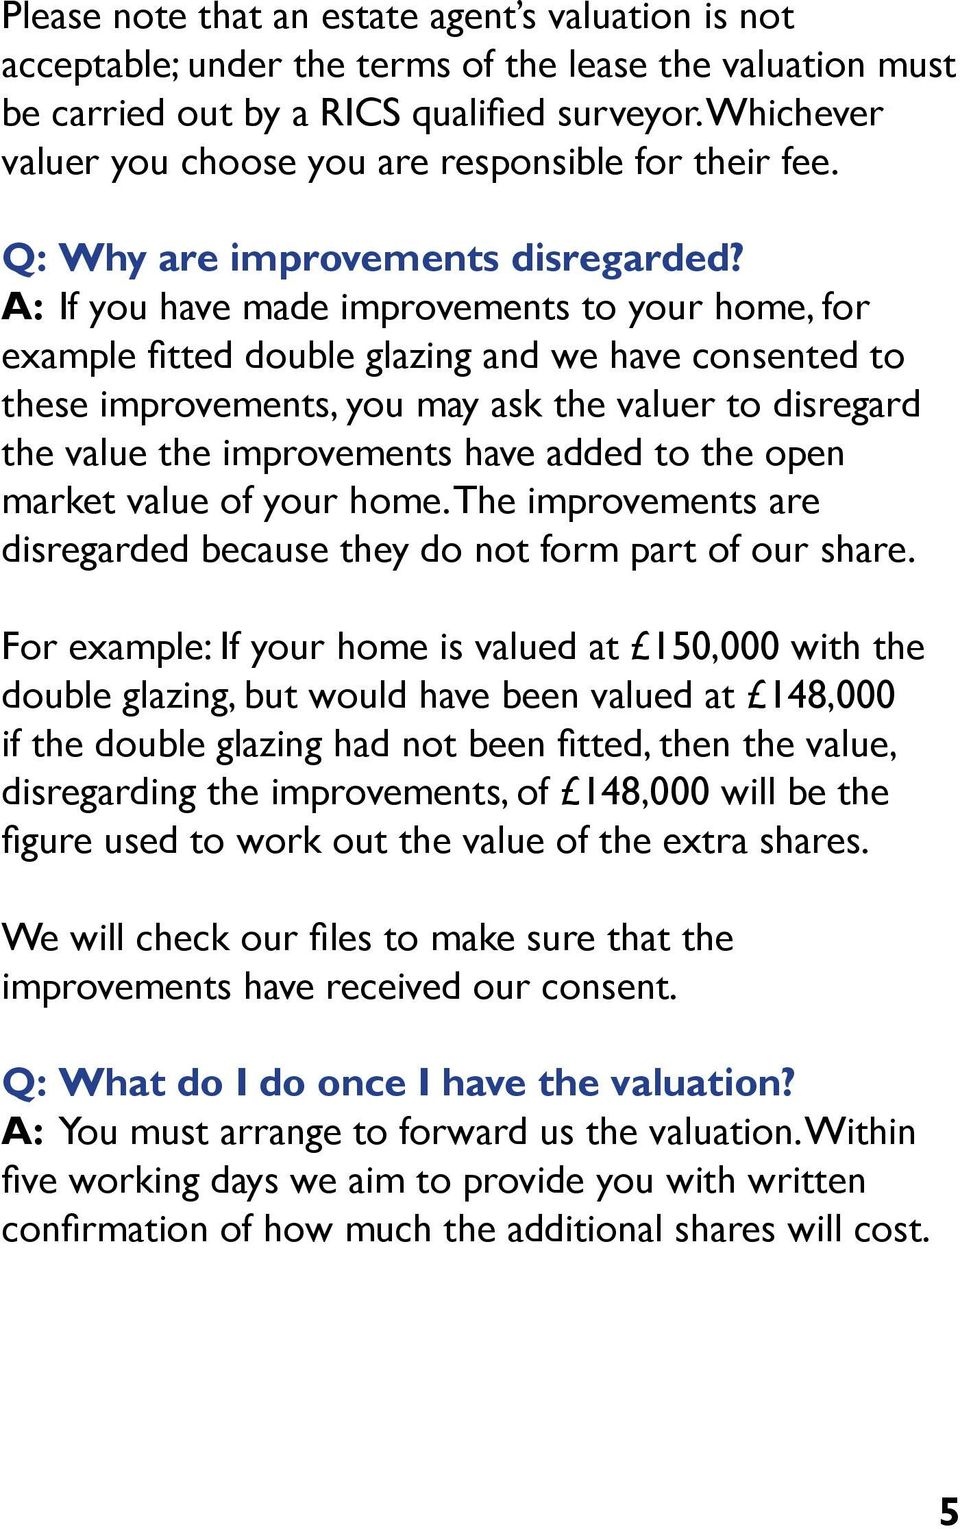 A: If you have made improvements to your home, for example fitted double glazing and we have consented to these improvements, you may ask the valuer to disregard the value the improvements have added